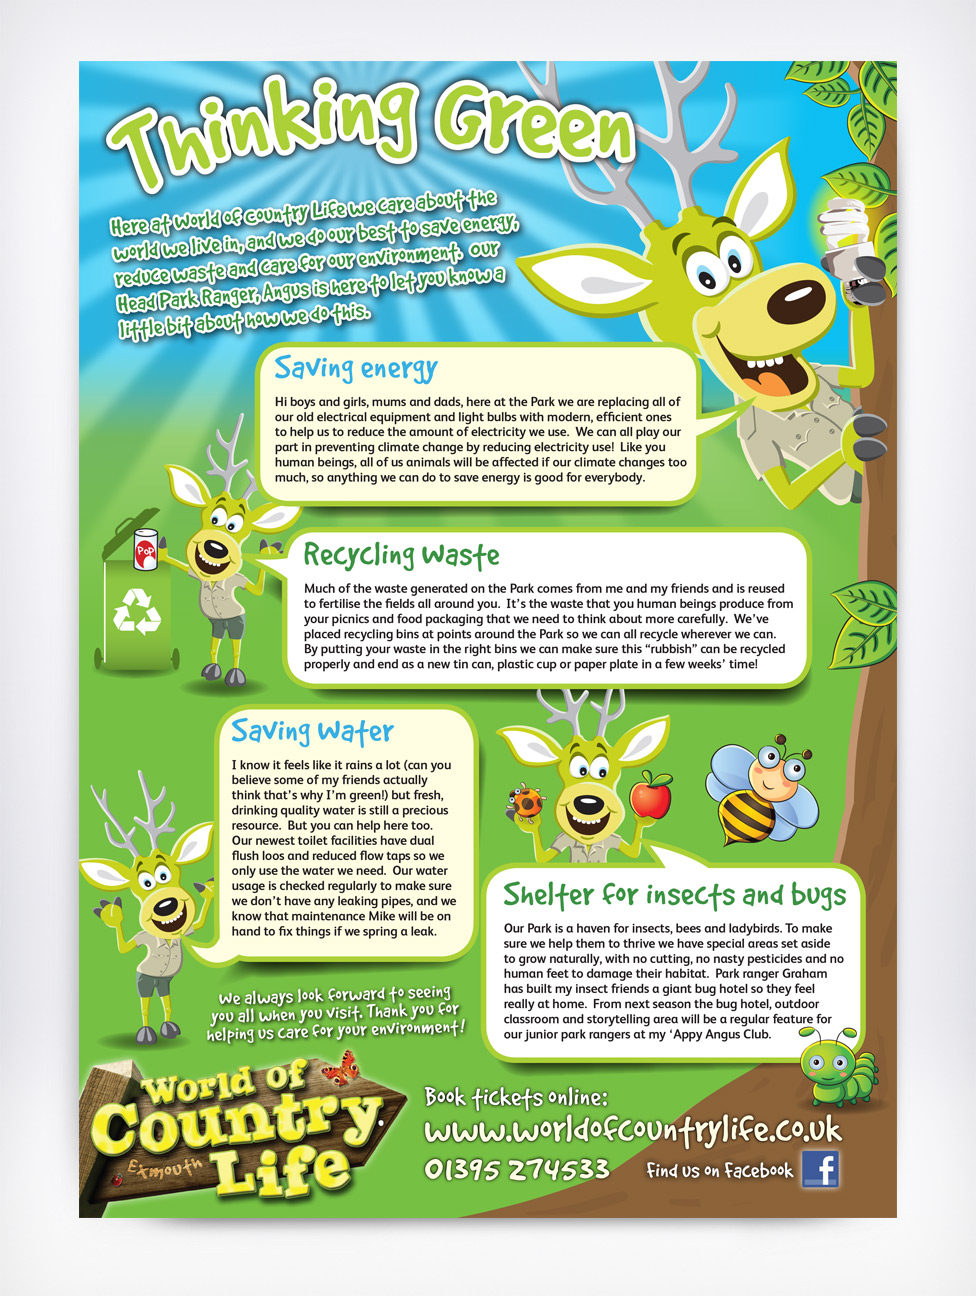 World of Country Life Information Sheet